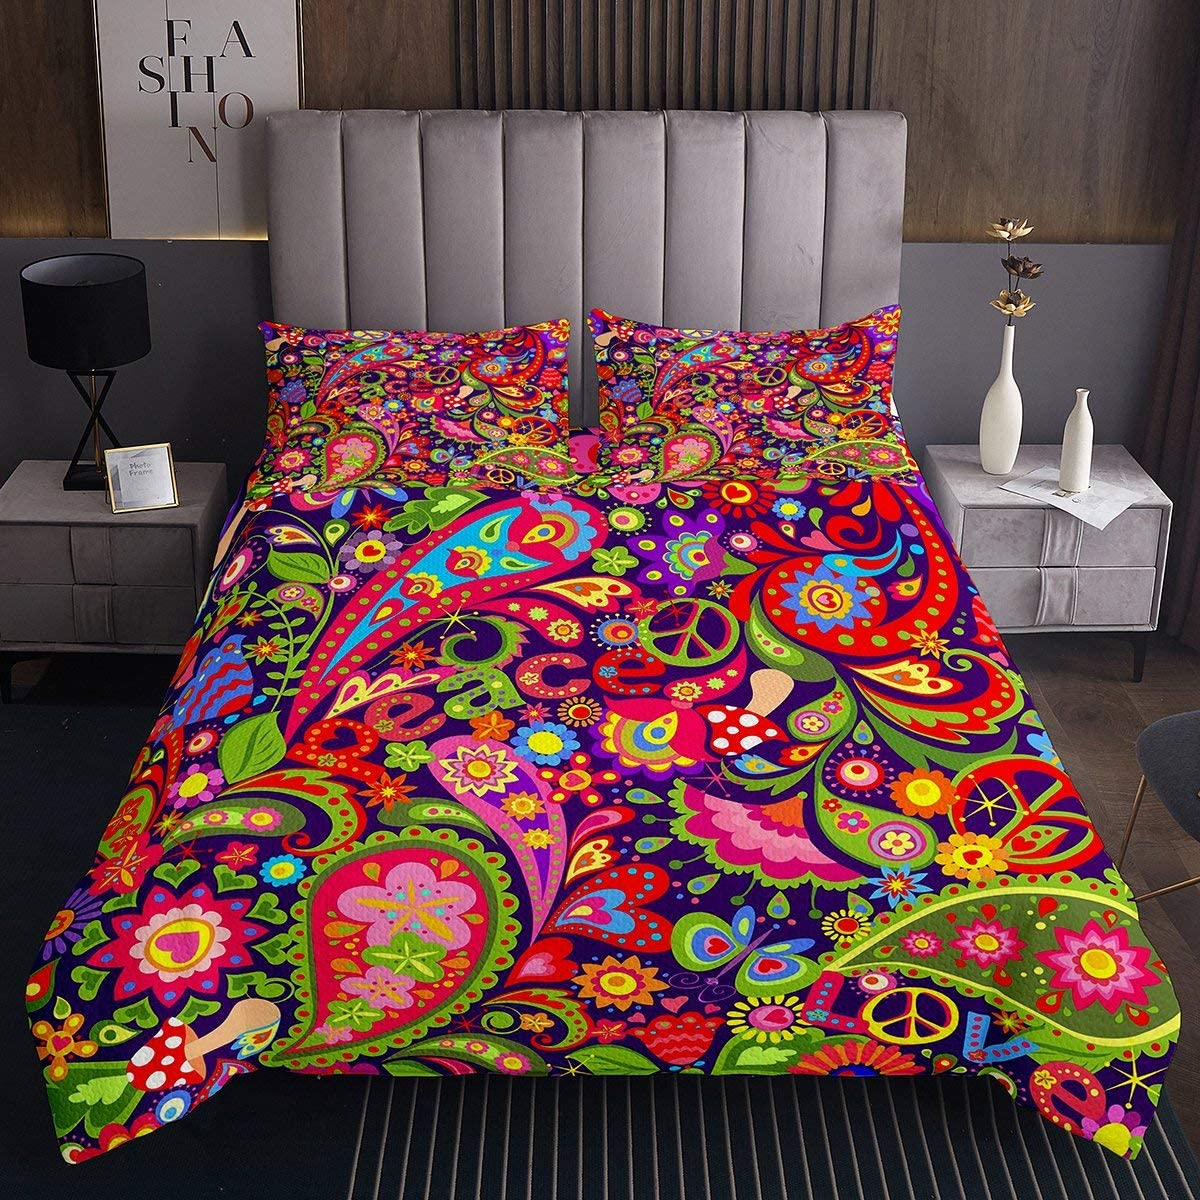 Erosebridal Paisley Quilt Gypsy Quilted Coverlet Trippy Bedspread Butterfly Insect Mushroom Colorful Spiral Quilt for Girl Women, Living Room Decorative 3Pcs Bedclothes King Size